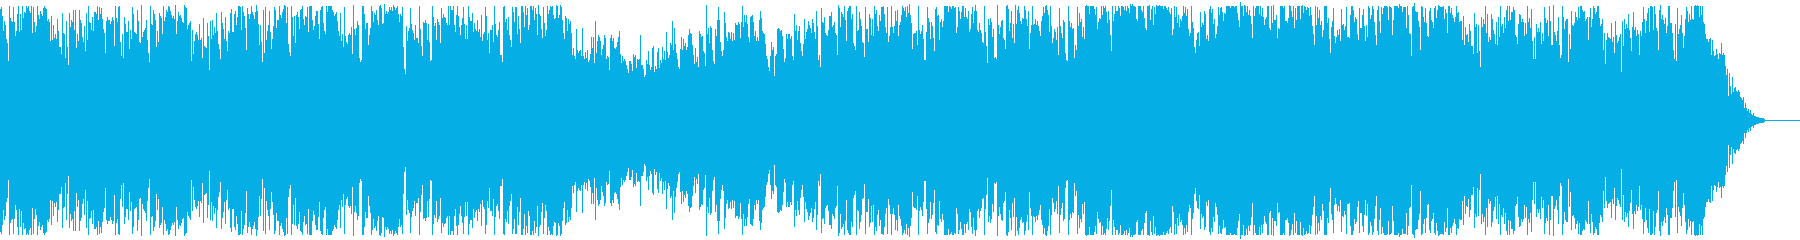 CM / Relax / Western Female Vocal's reproduced waveform